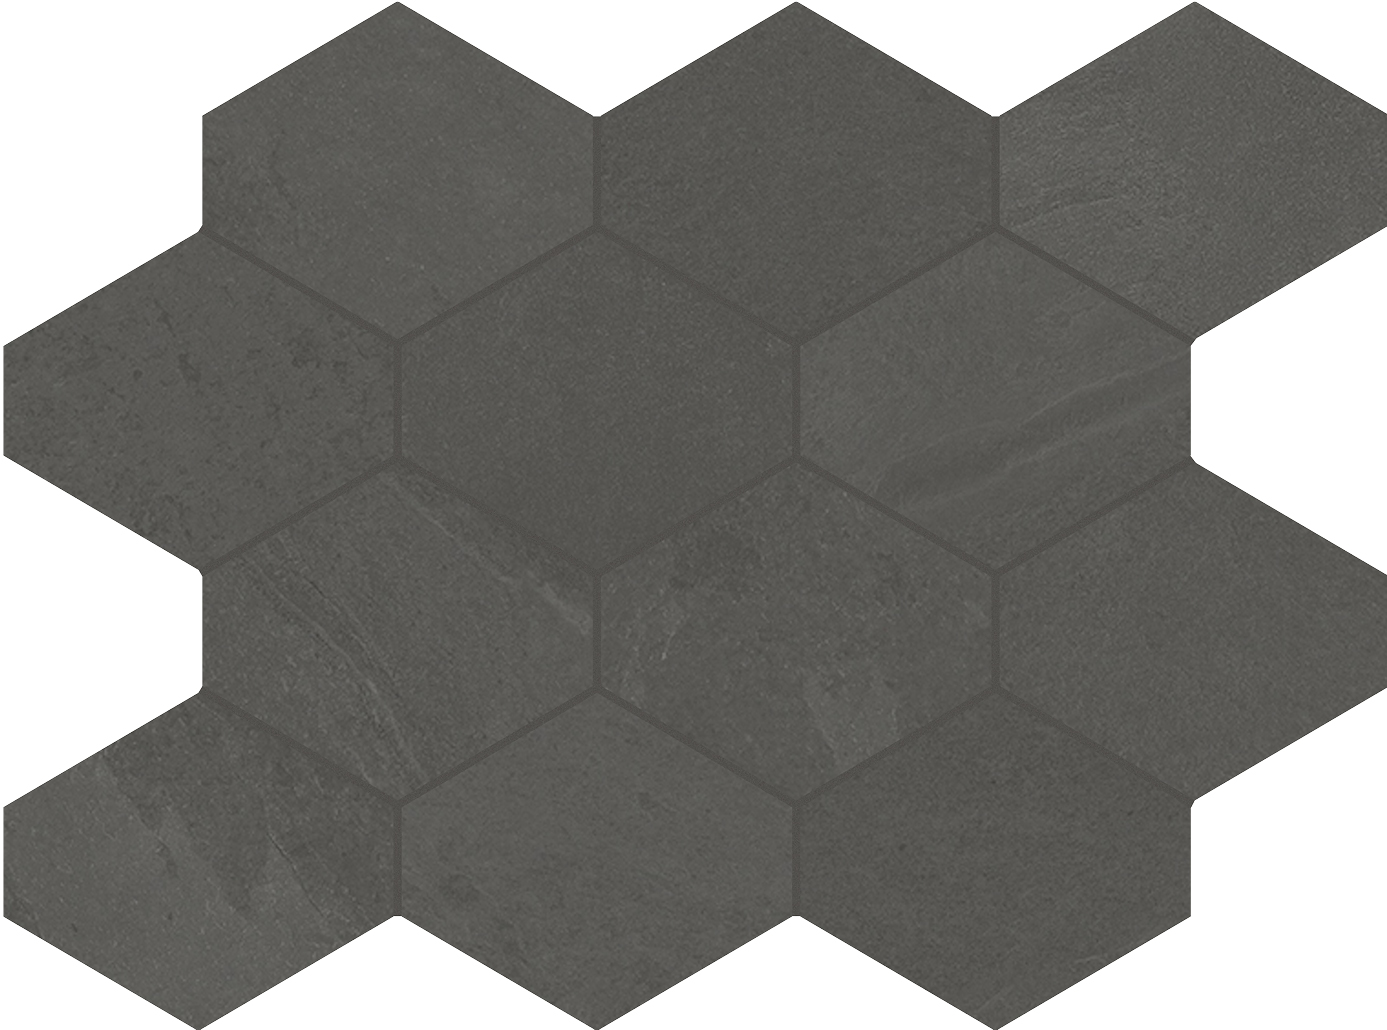 4 x 4 Brazilian Slate Pencil Grey Rectified Porcelain hexagon